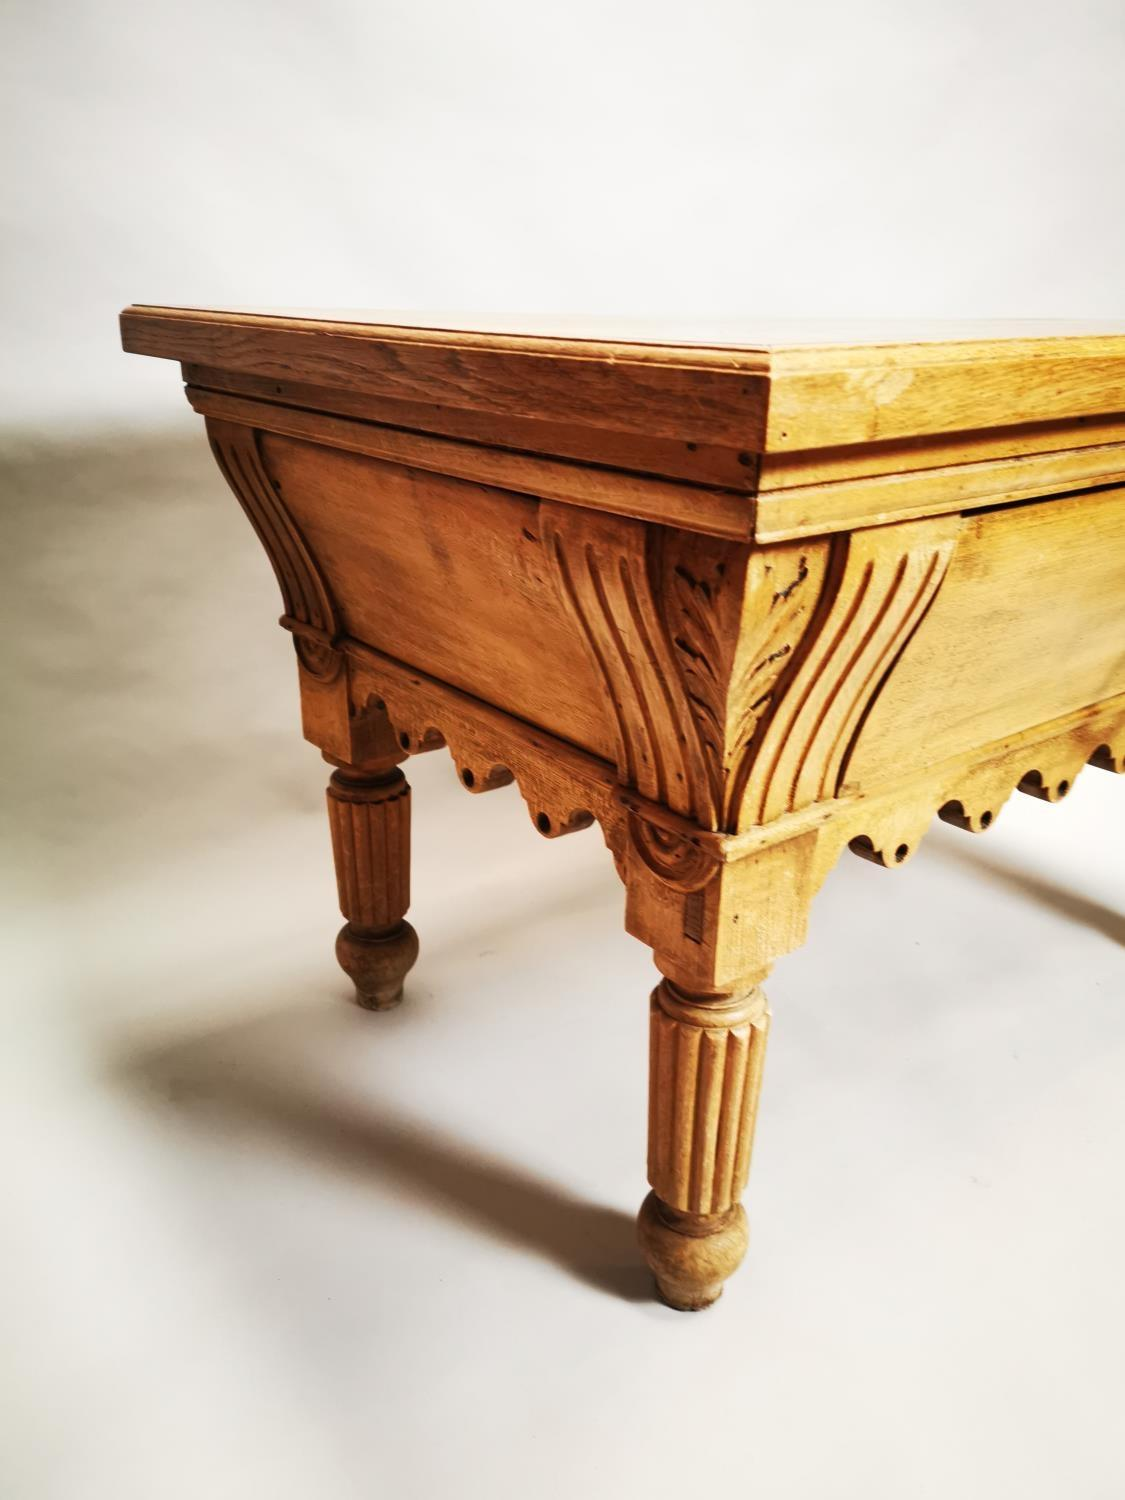 Early 20th C. pine and oak butchers table - Image 4 of 12